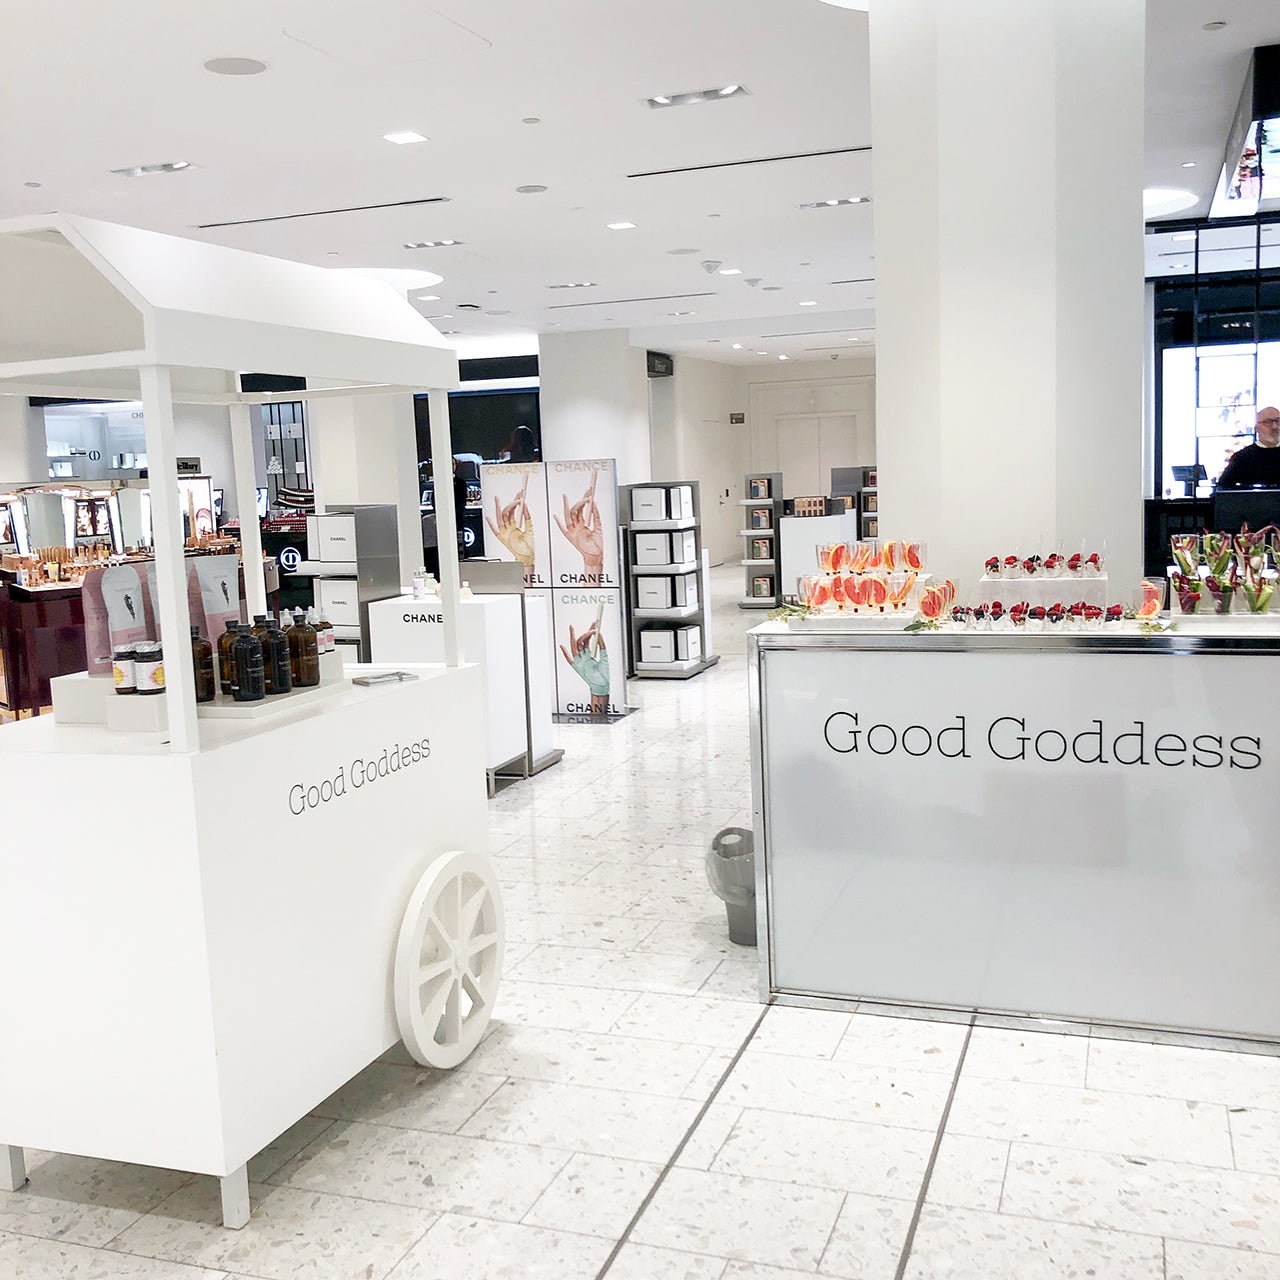 Good Goddess at Holt Renfrew